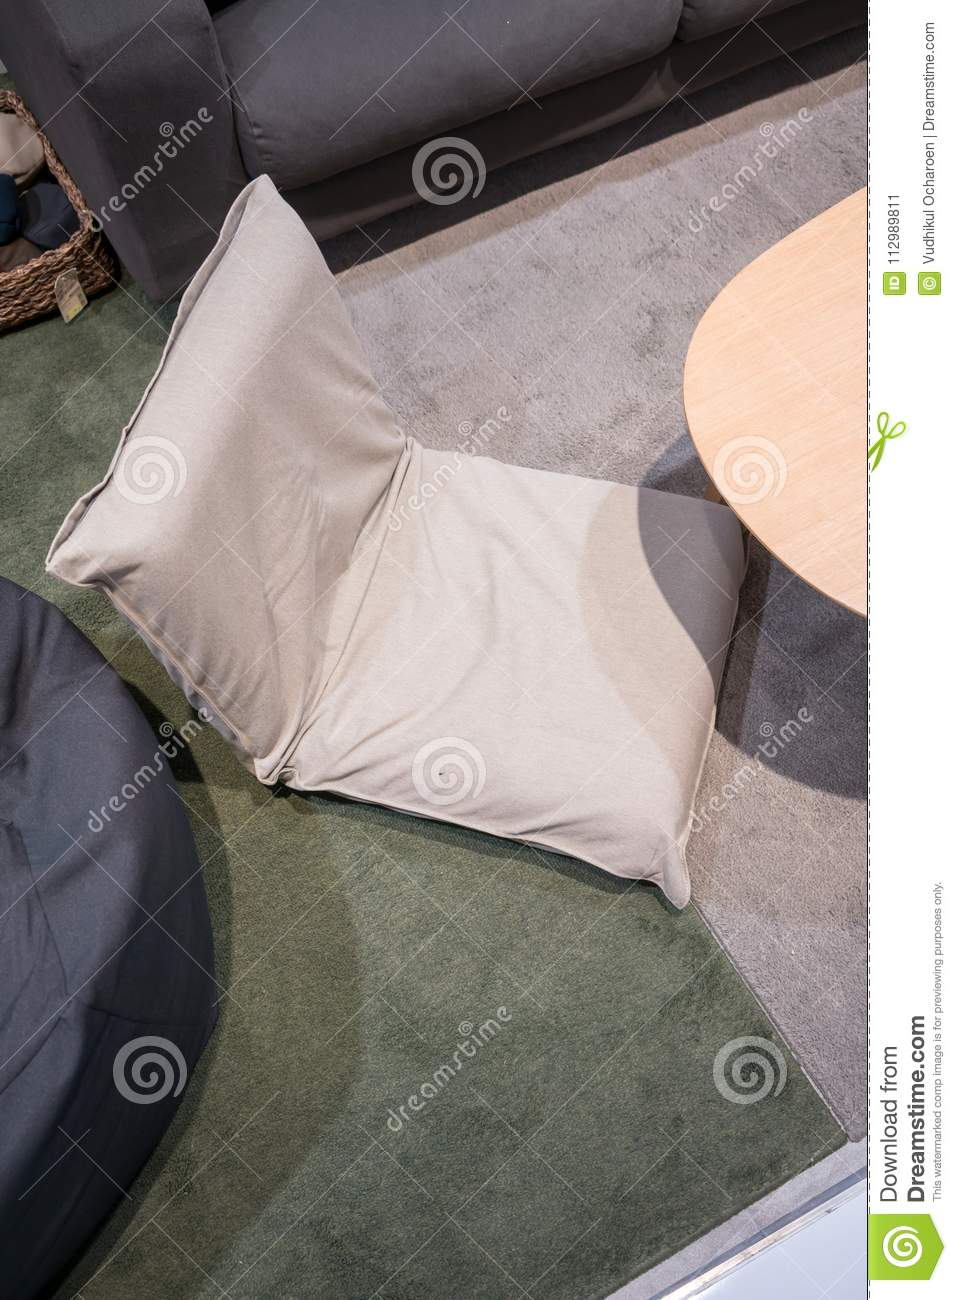 Living corner in modern style with foldable cushion on carpet.